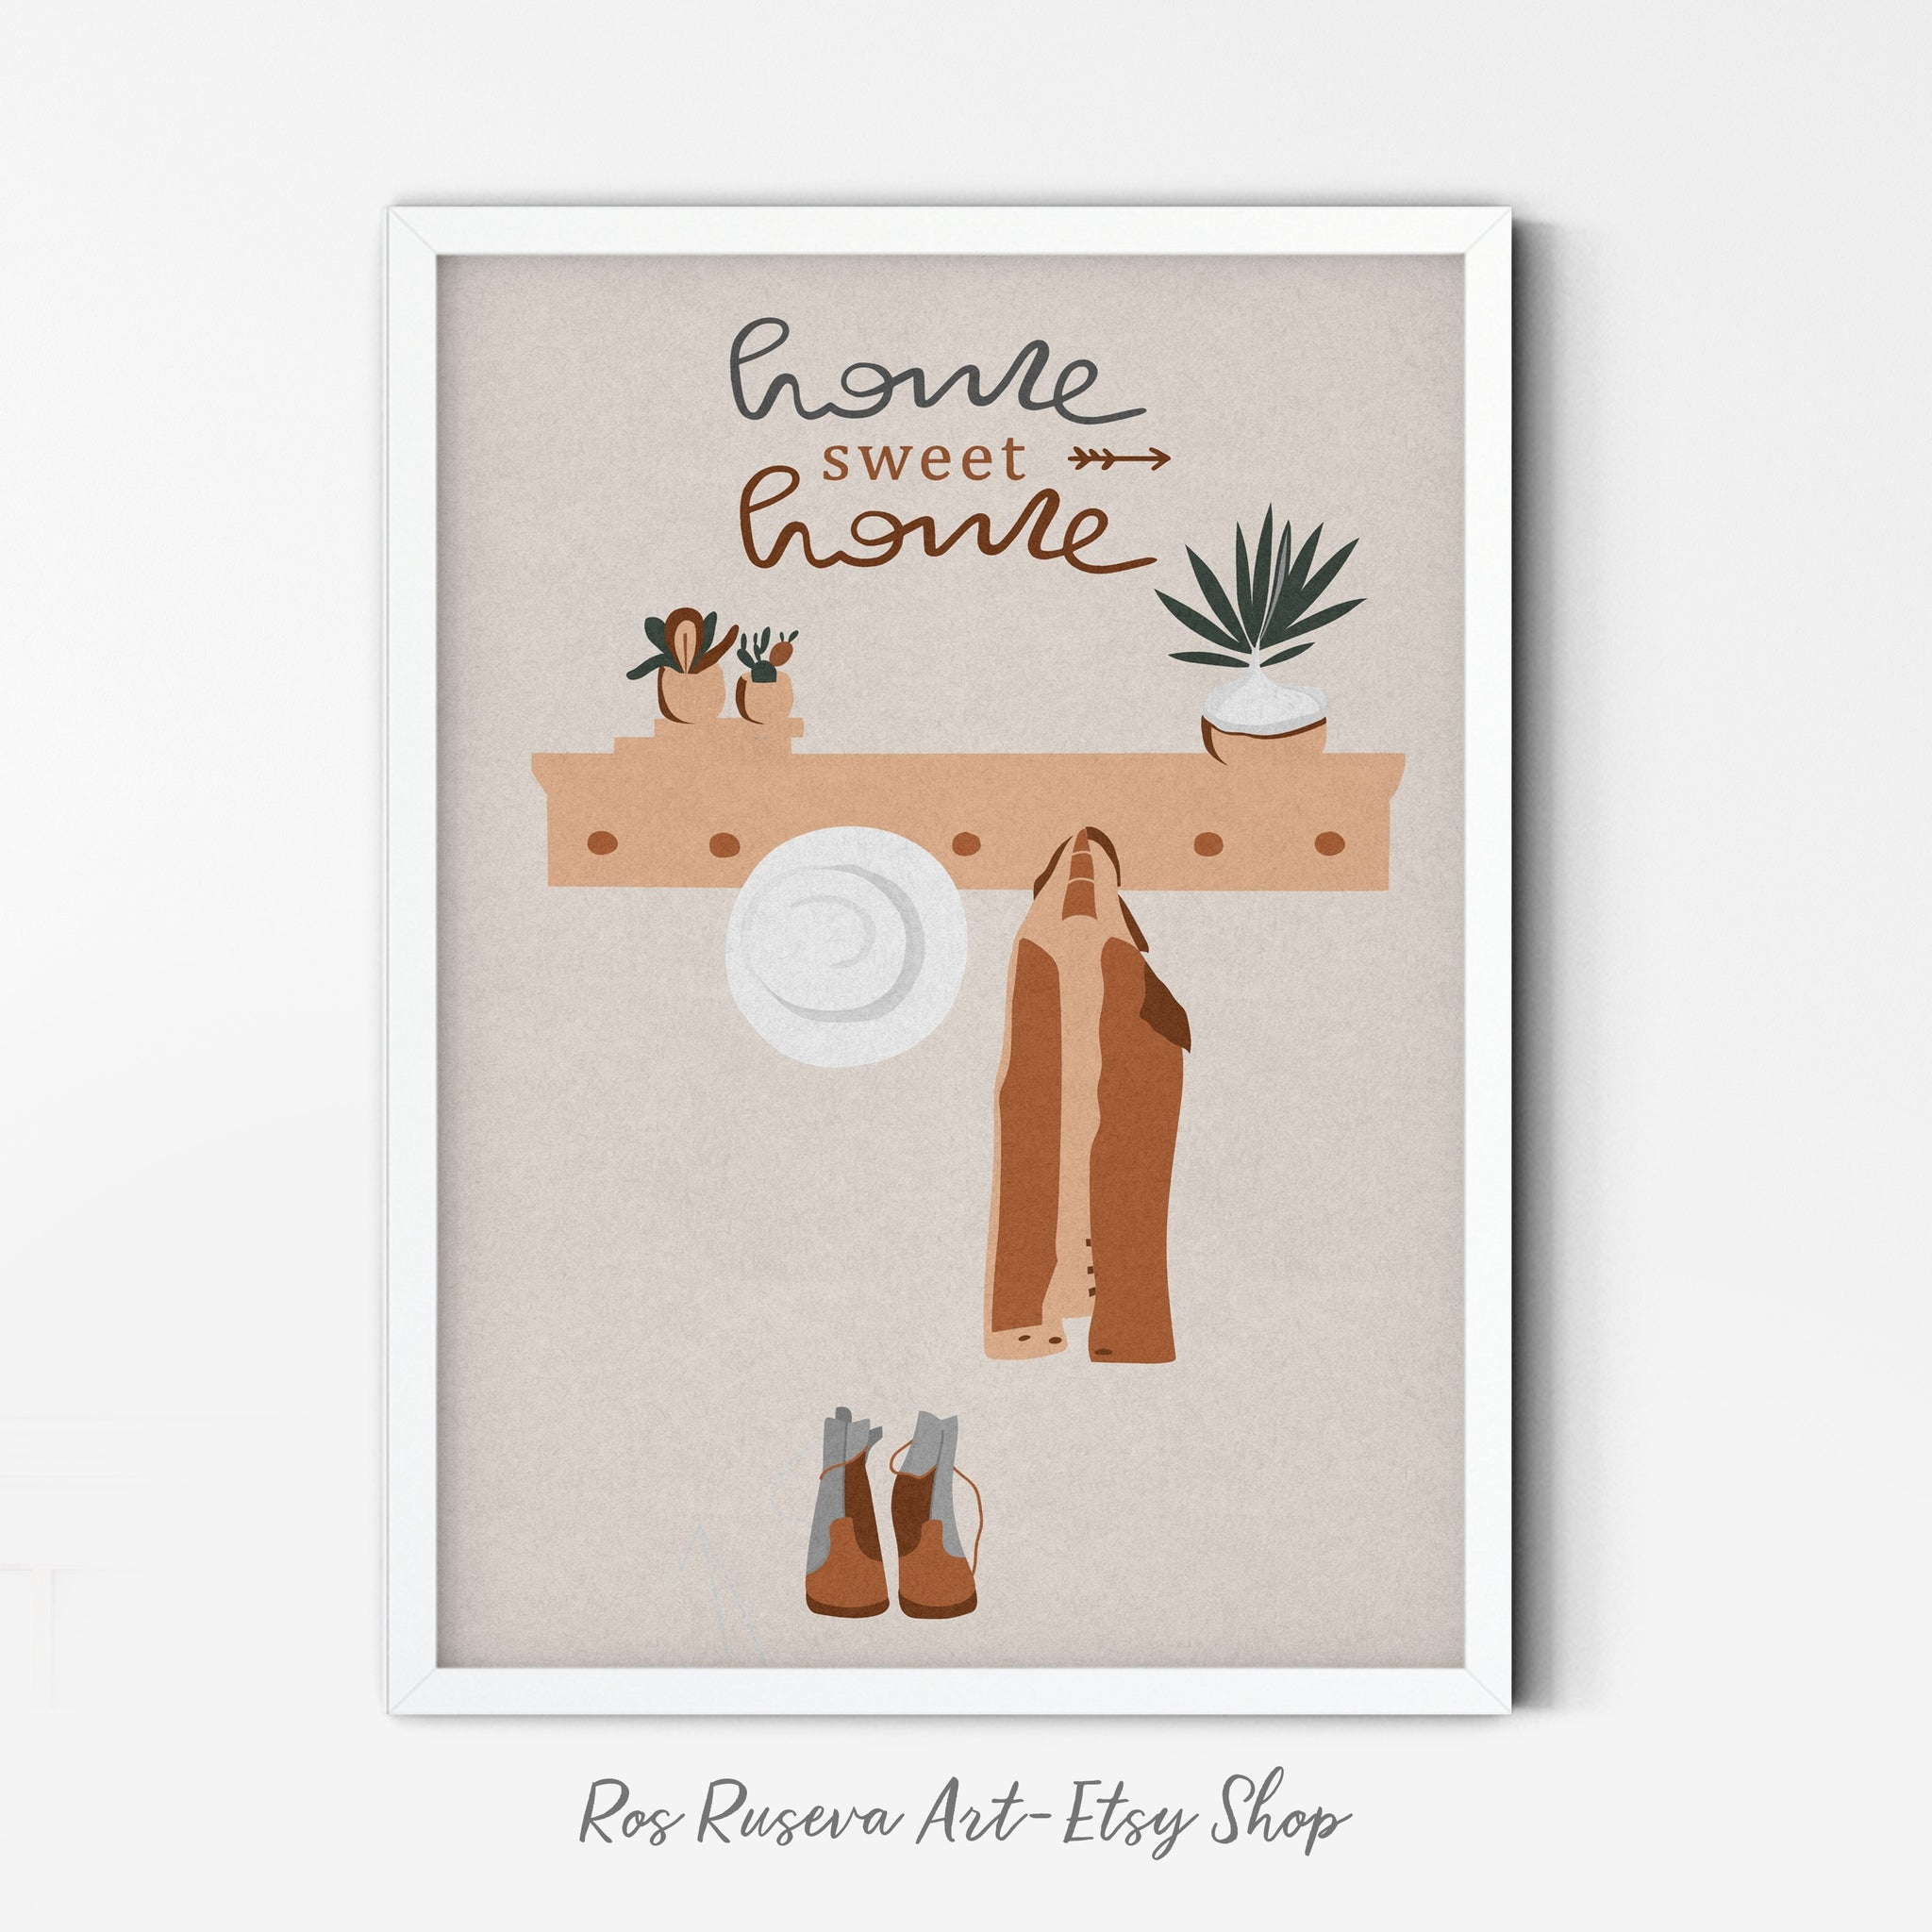 Home Sweet Home Print, Family Poster, Neutral Wall Art, Warm Color Palette, Minimalist Poster Print, Sweet Home Art, Boho Art - Ros Ruseva